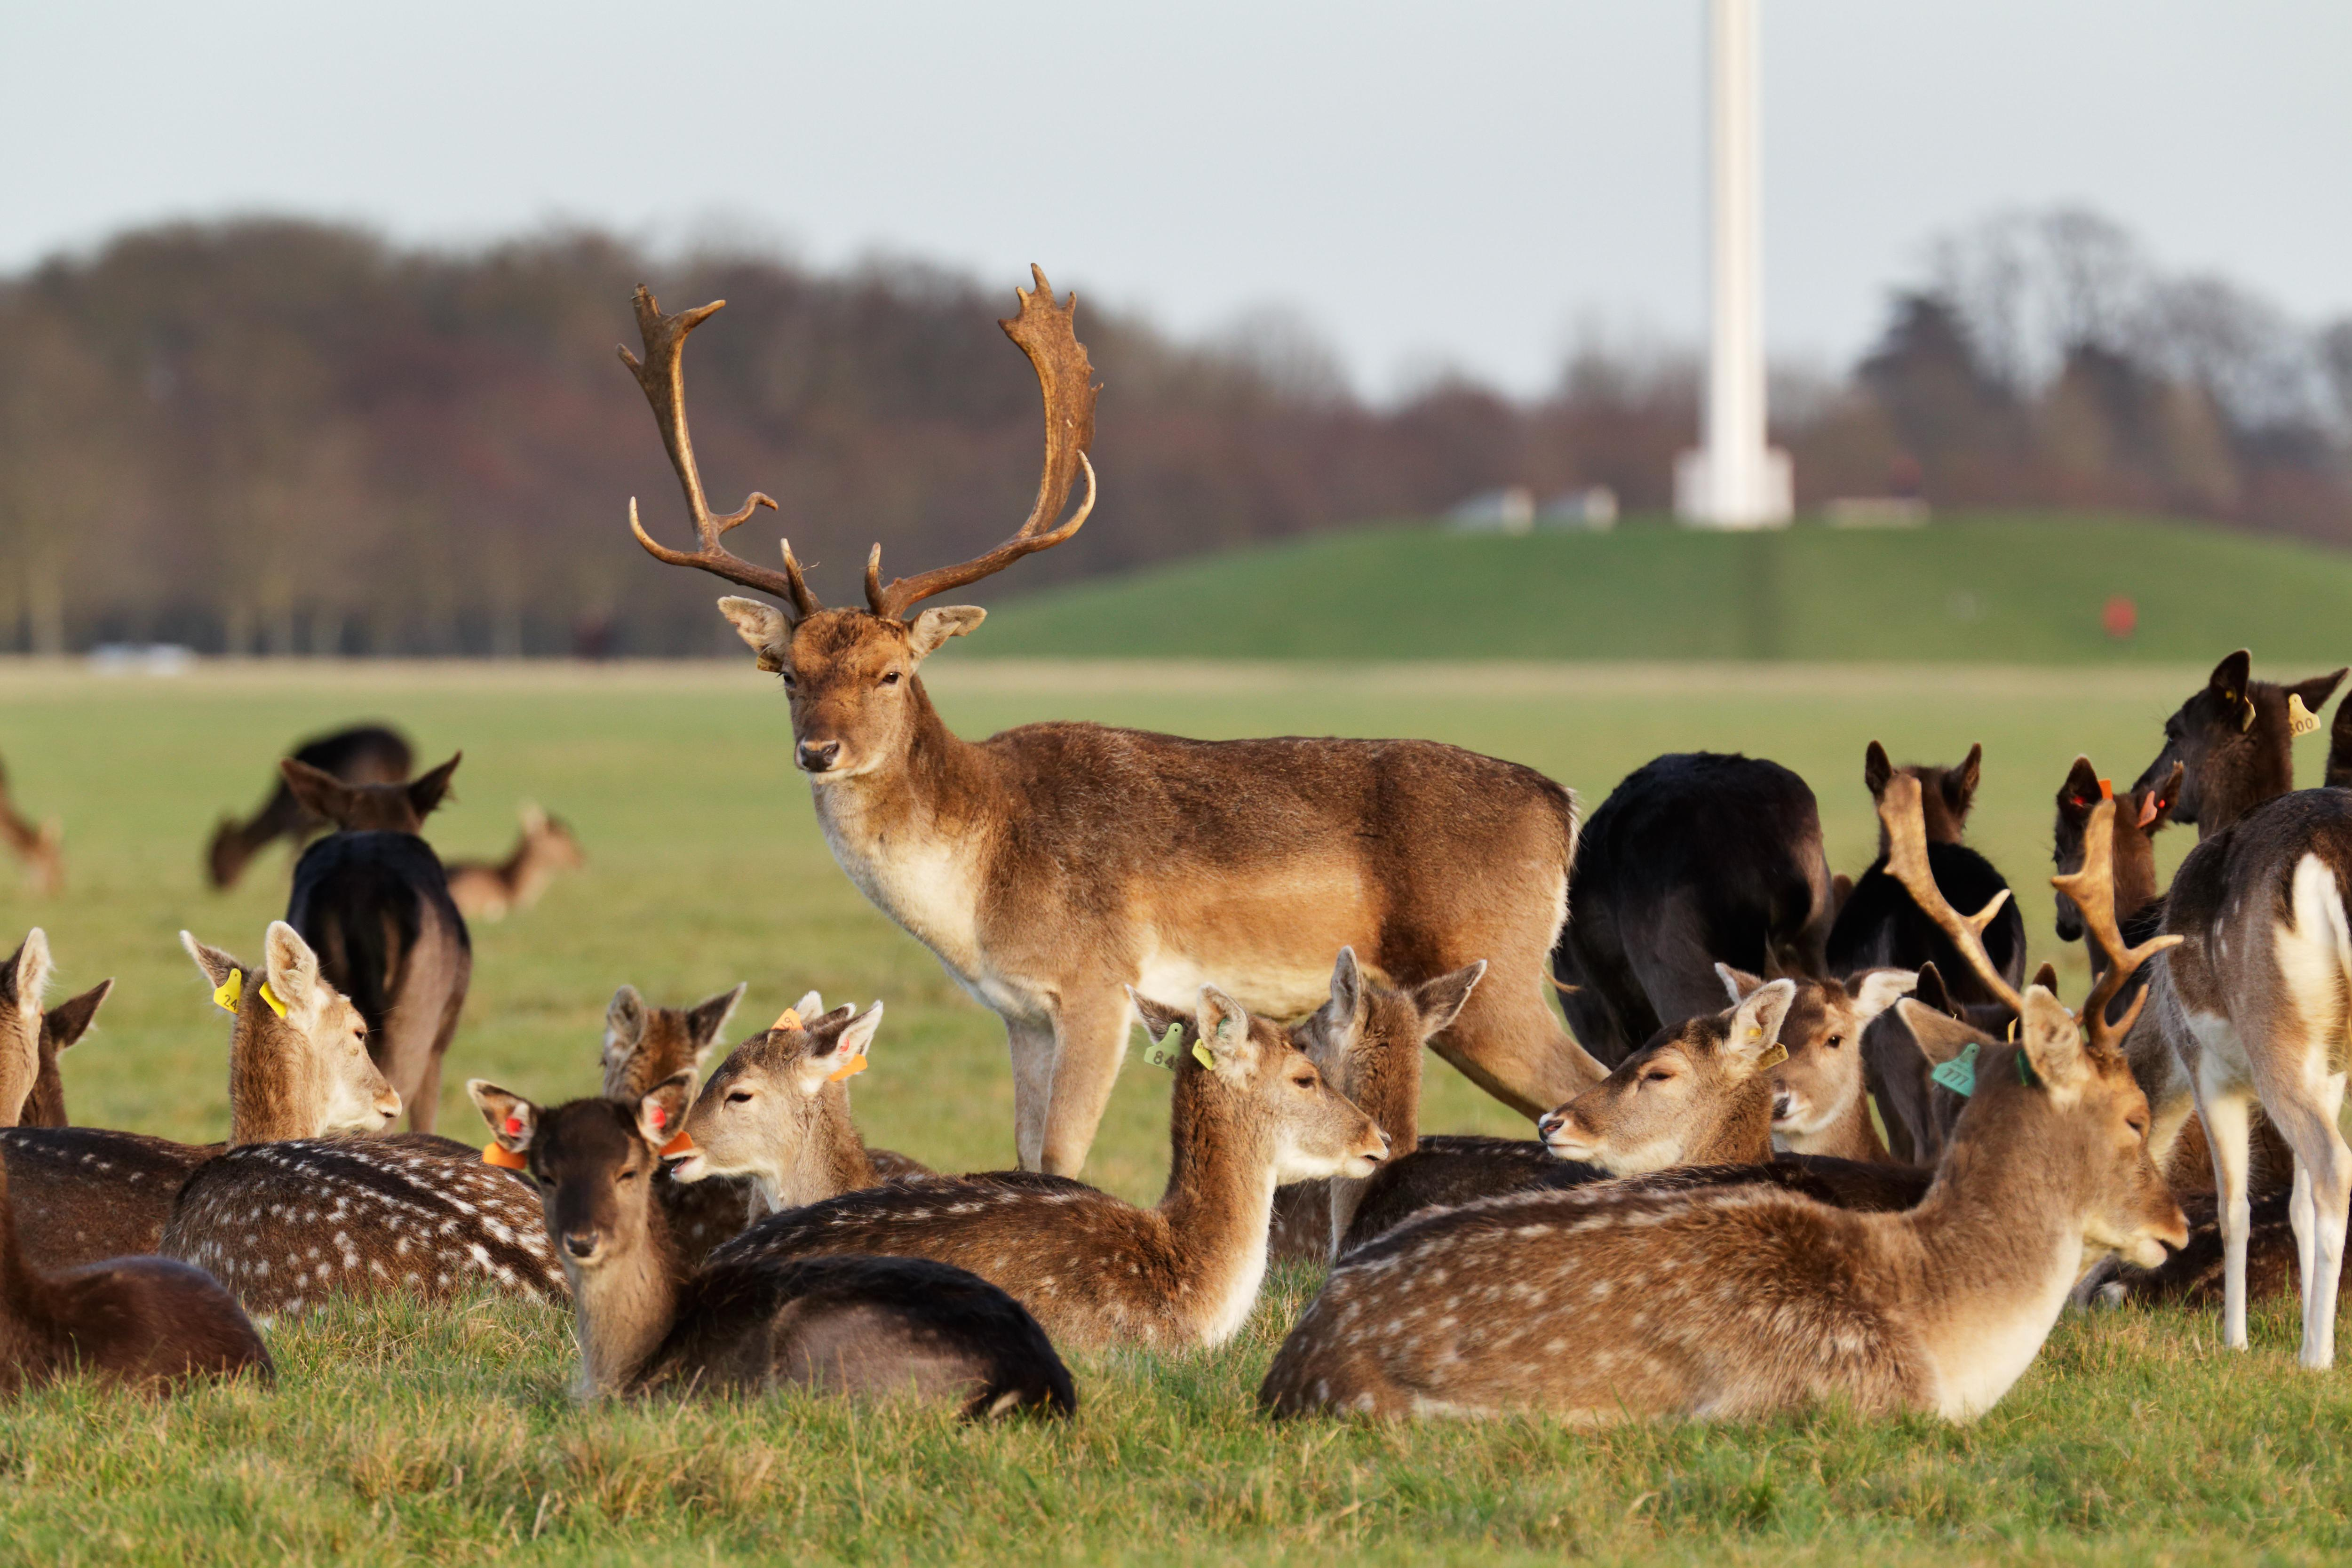 A herd of deer in the Phoenix Park in Dublin Ireland